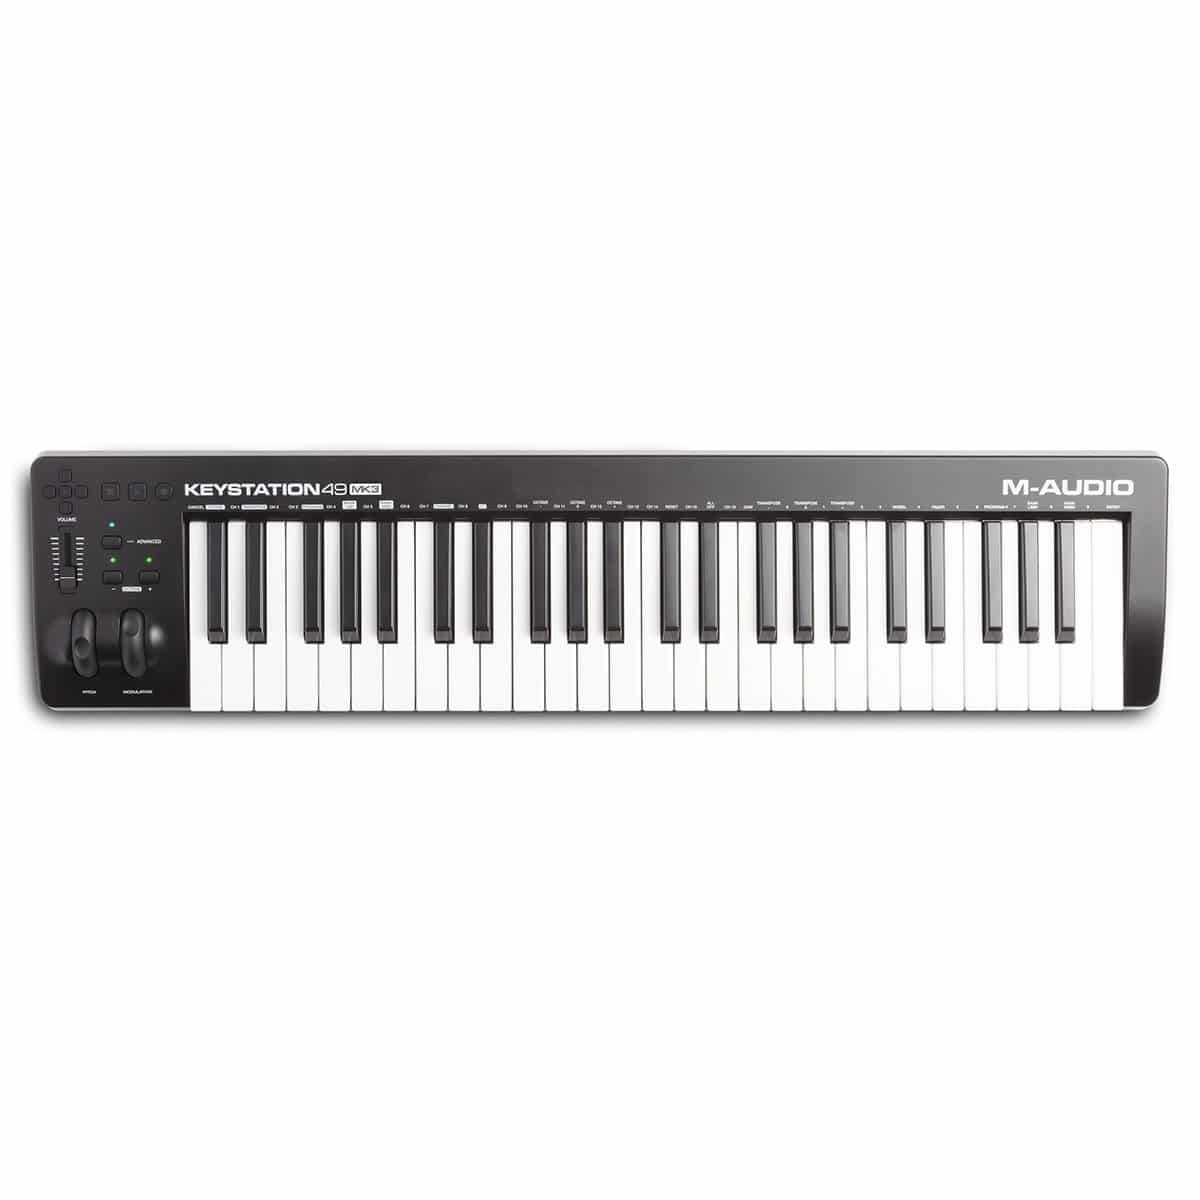 Controlador MIDI M-Audio Keystation49MK3